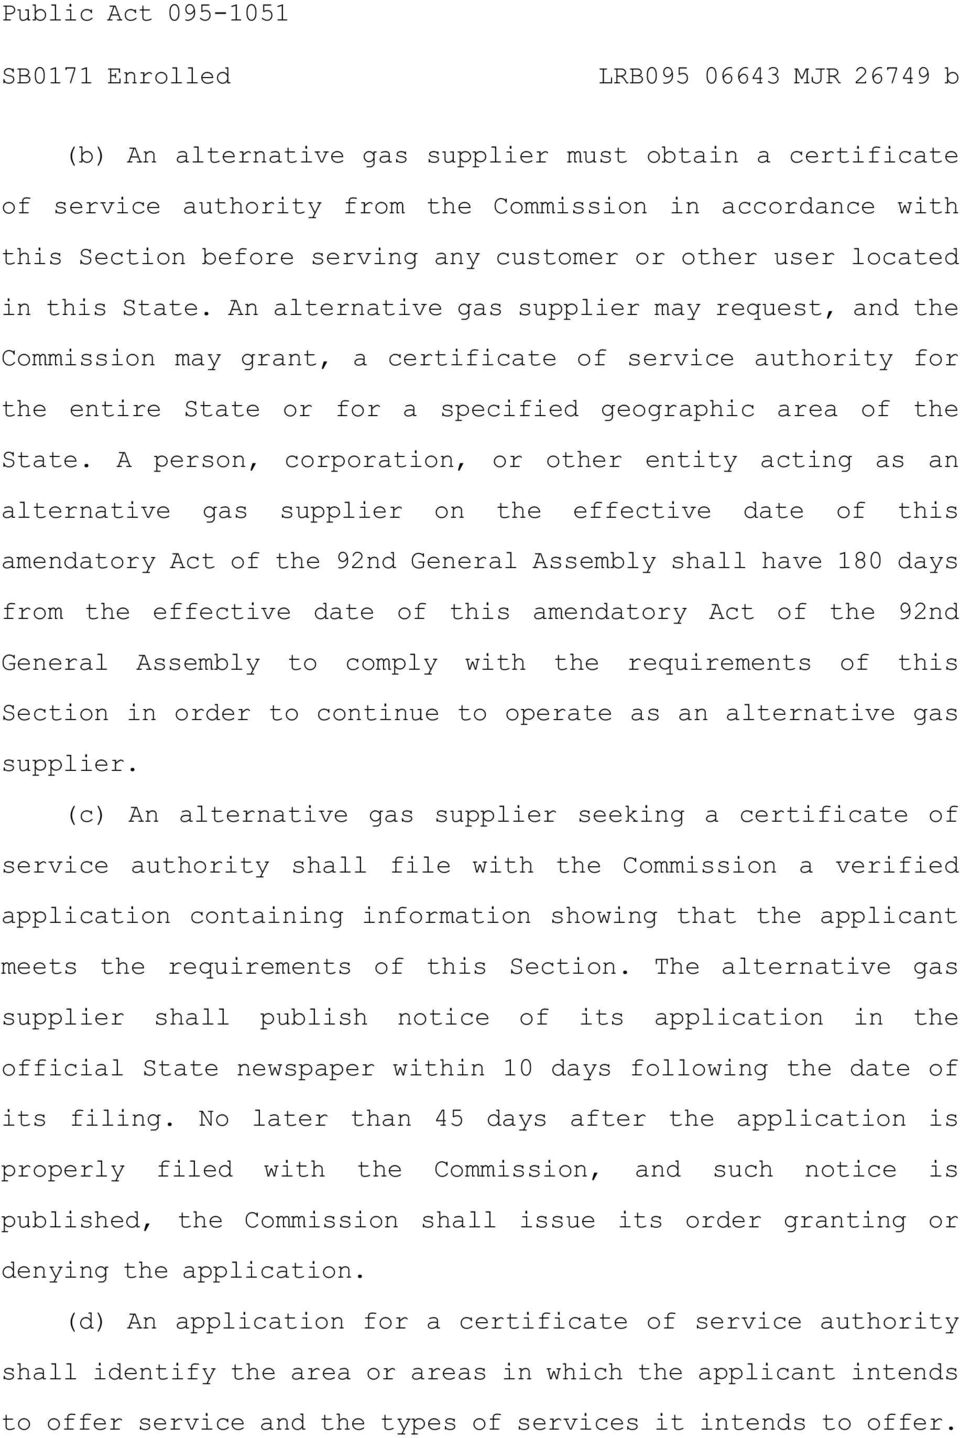 A person, corporation, or other entity acting as an alternative gas supplier on the effective date of this amendatory Act of the 92nd General Assembly shall have 180 days from the effective date of